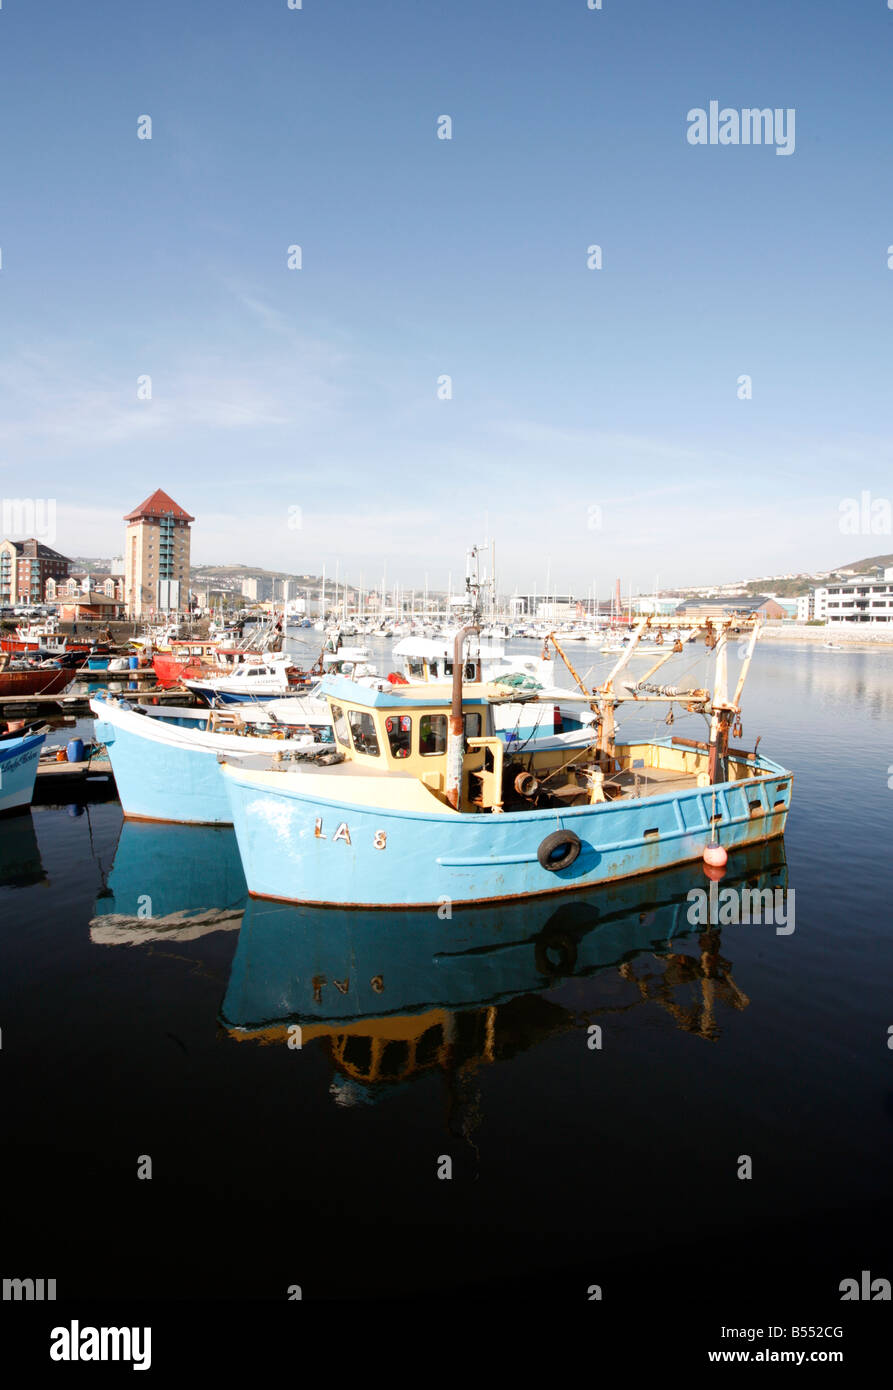 Fishing Boats in Swansea Harbour Abertawe South Wales - Stock Image